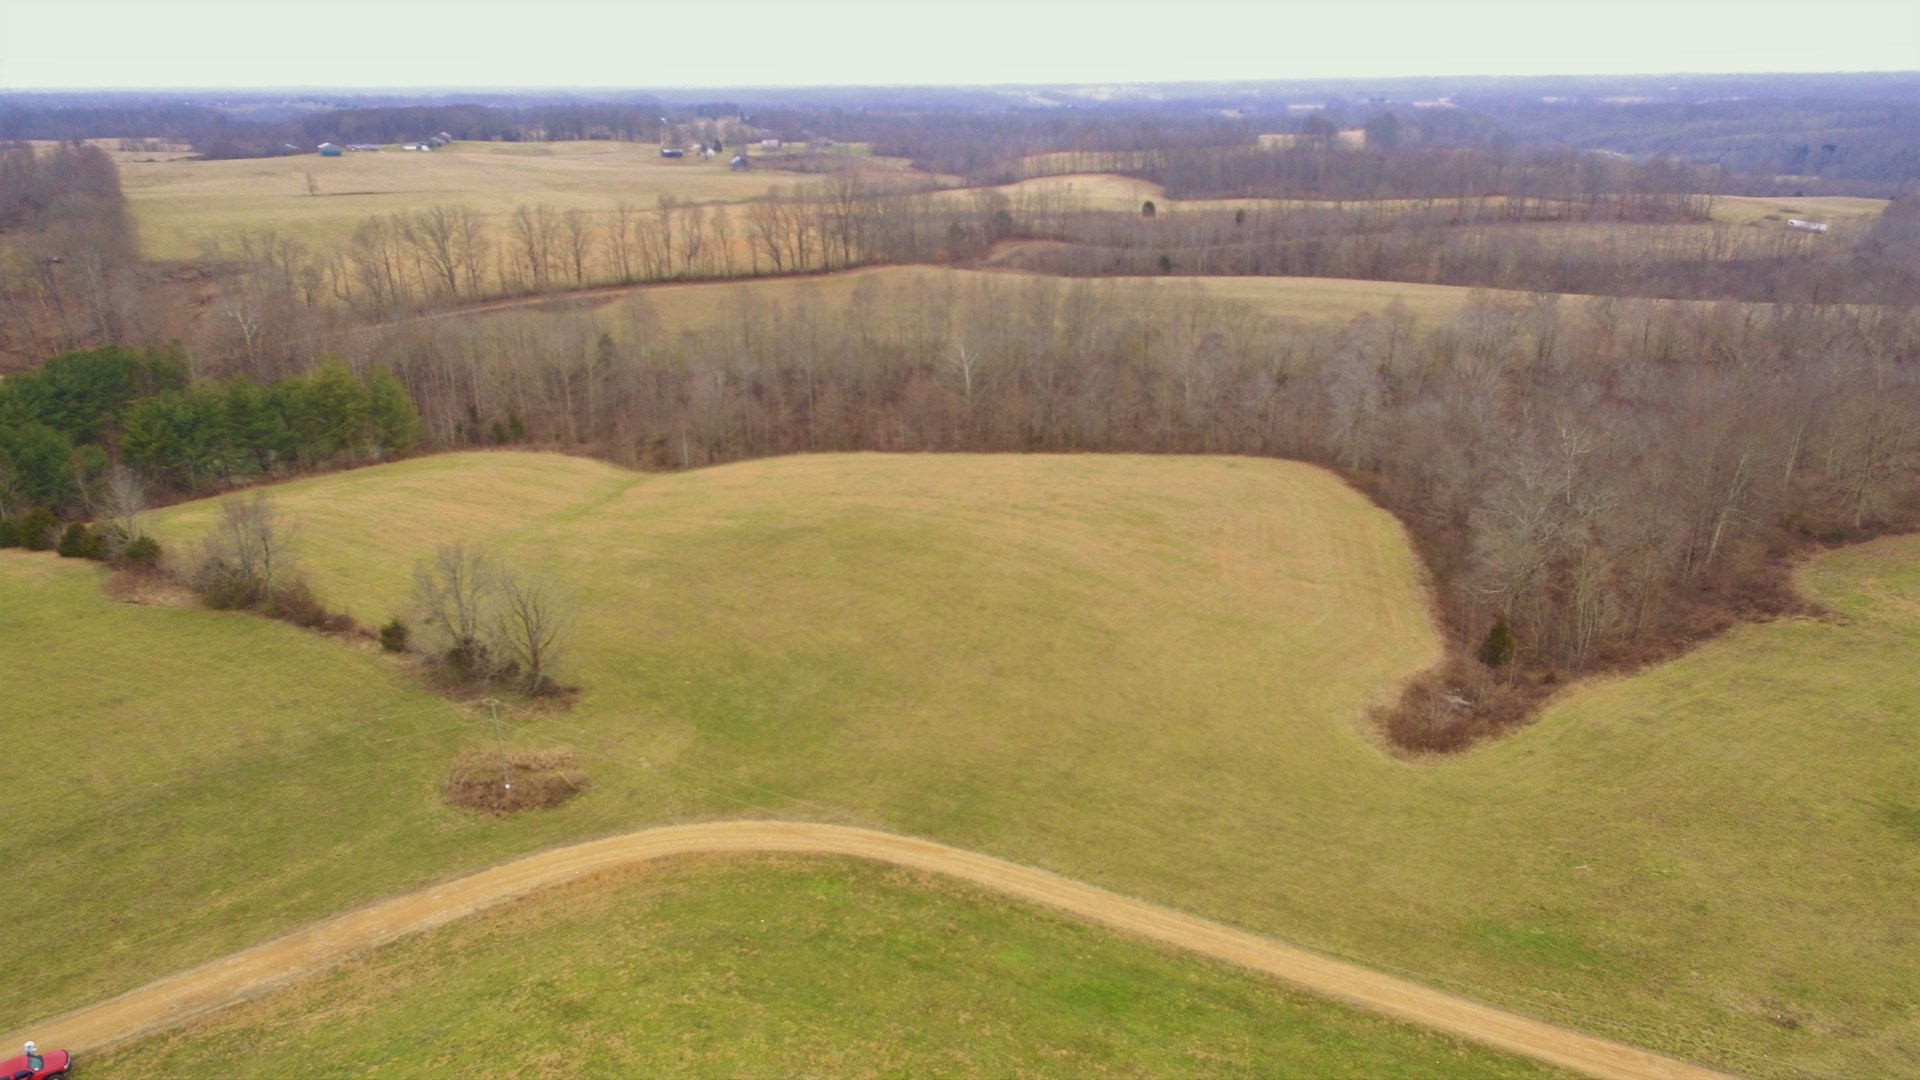 6.51 acre tract in Casey County, Kentucky